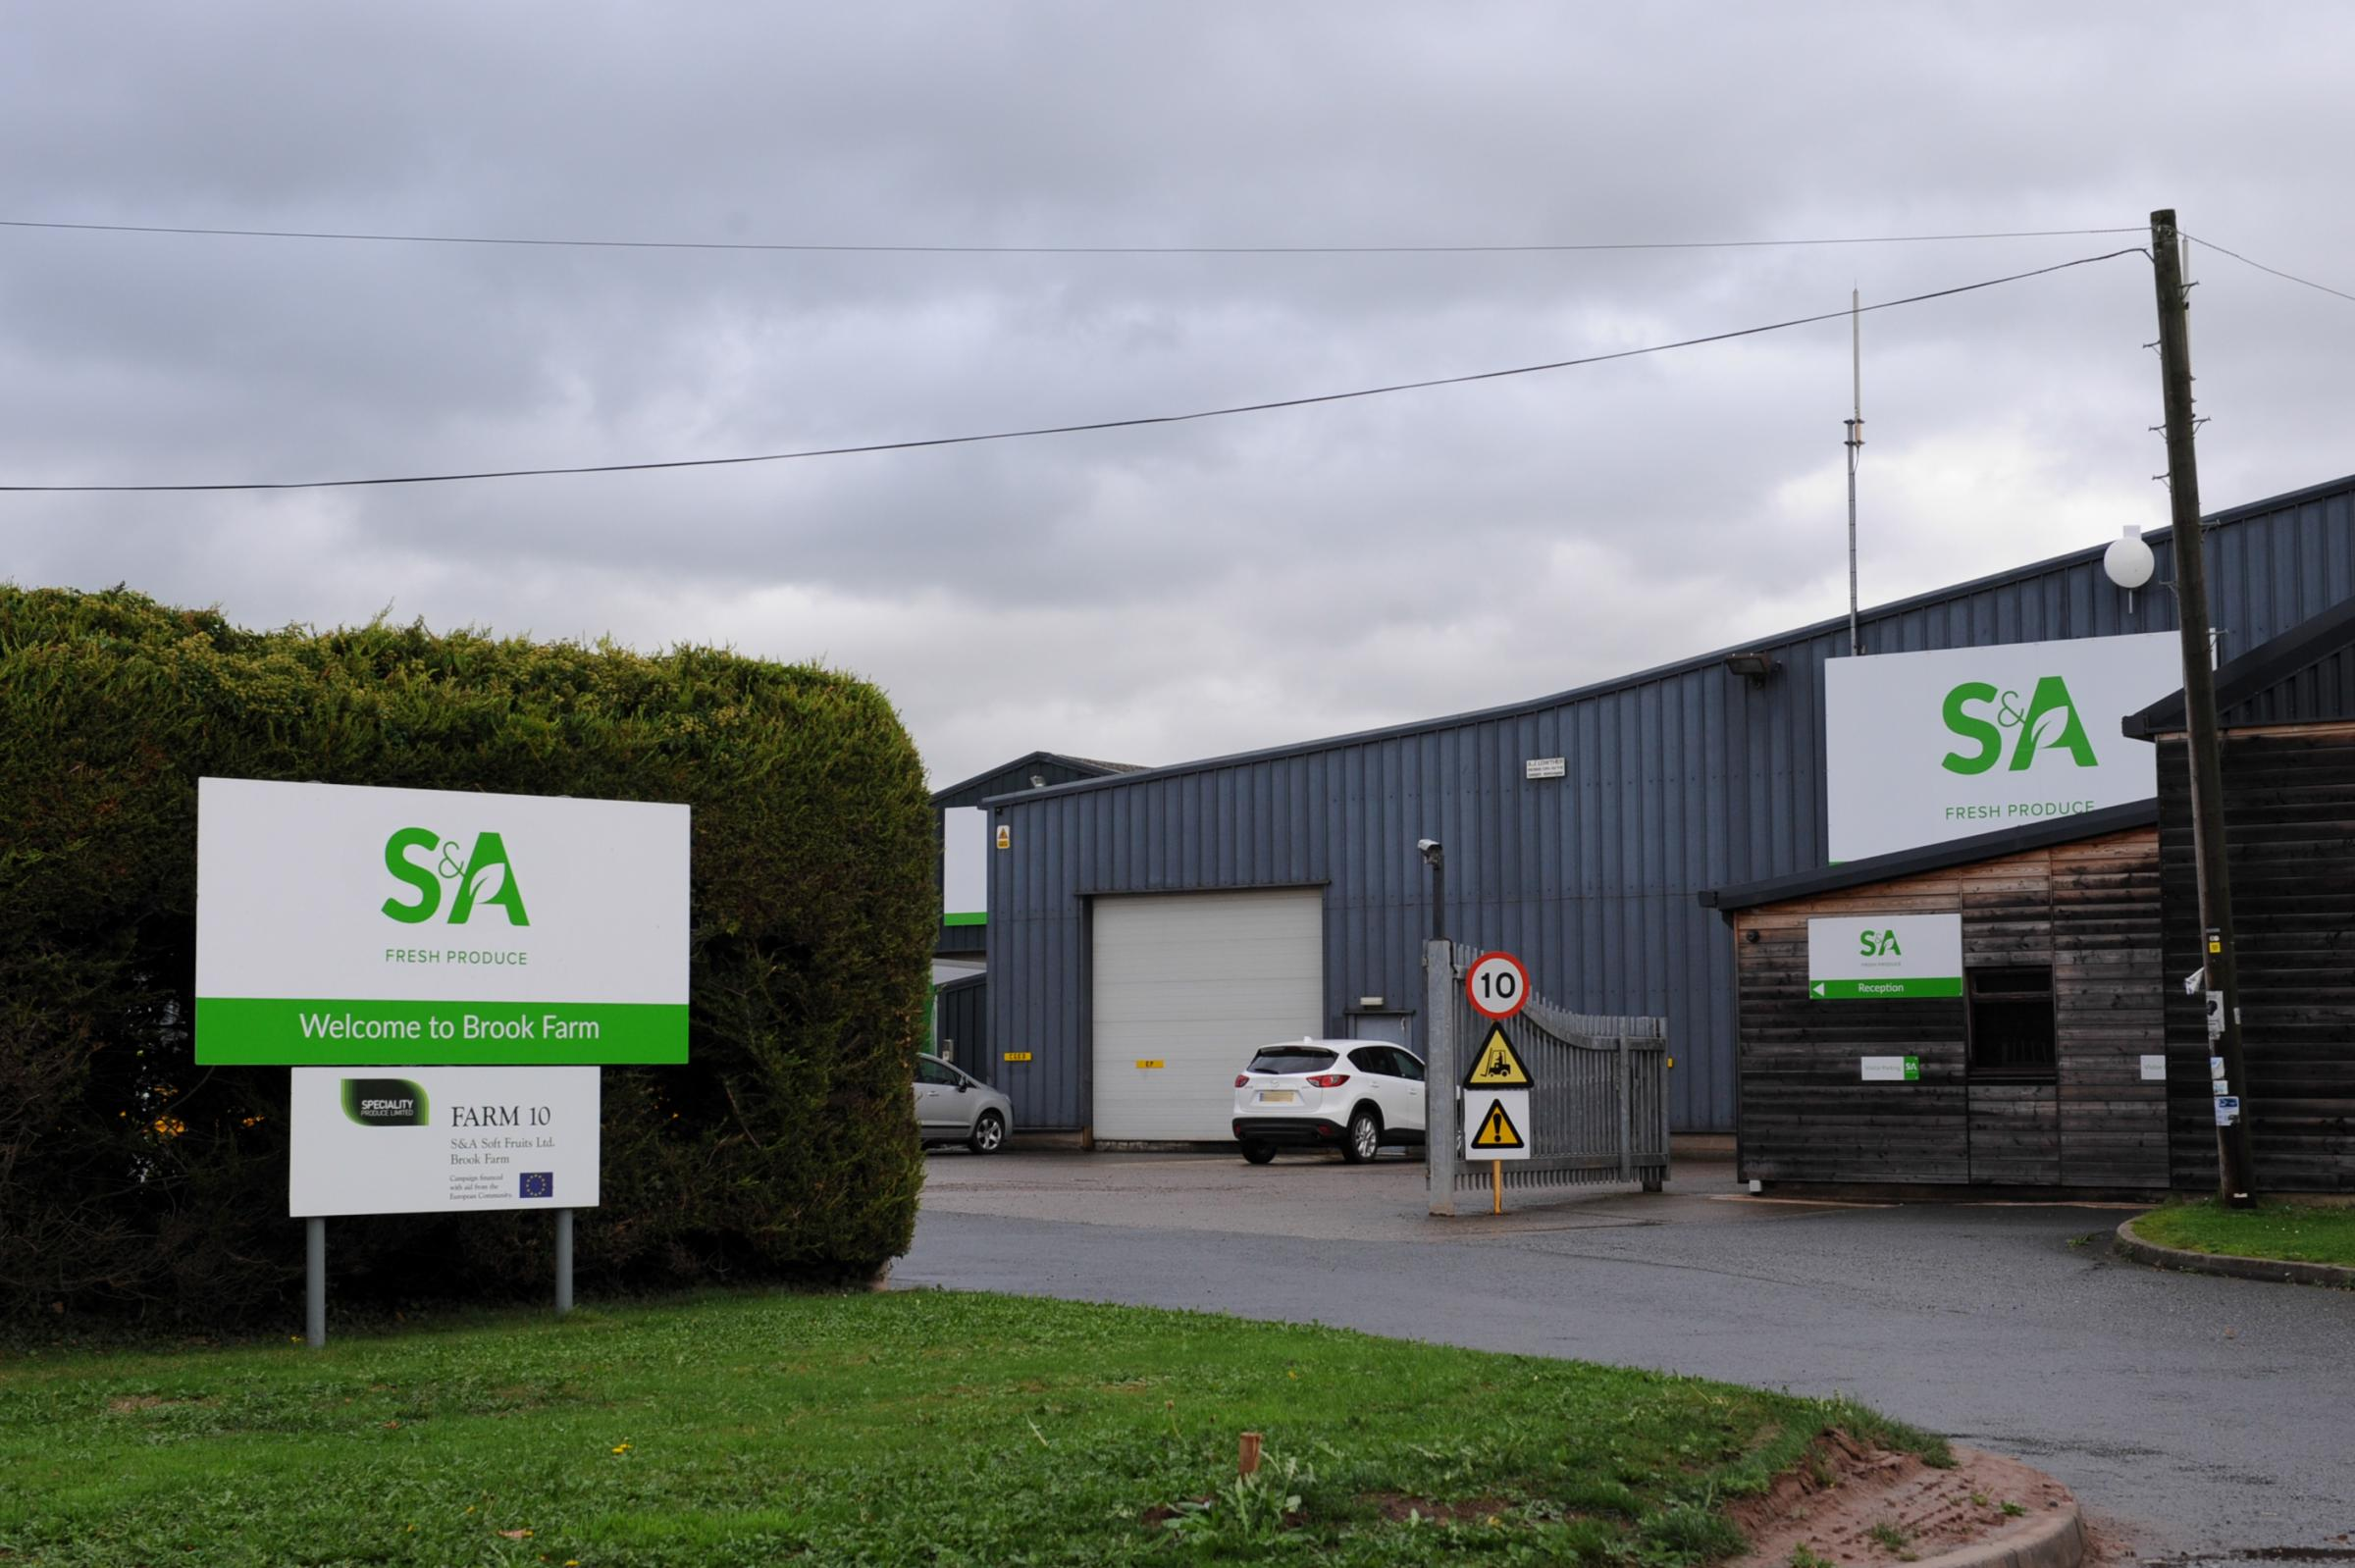 S & A Fresh Produce. Brook Farm, Marden.